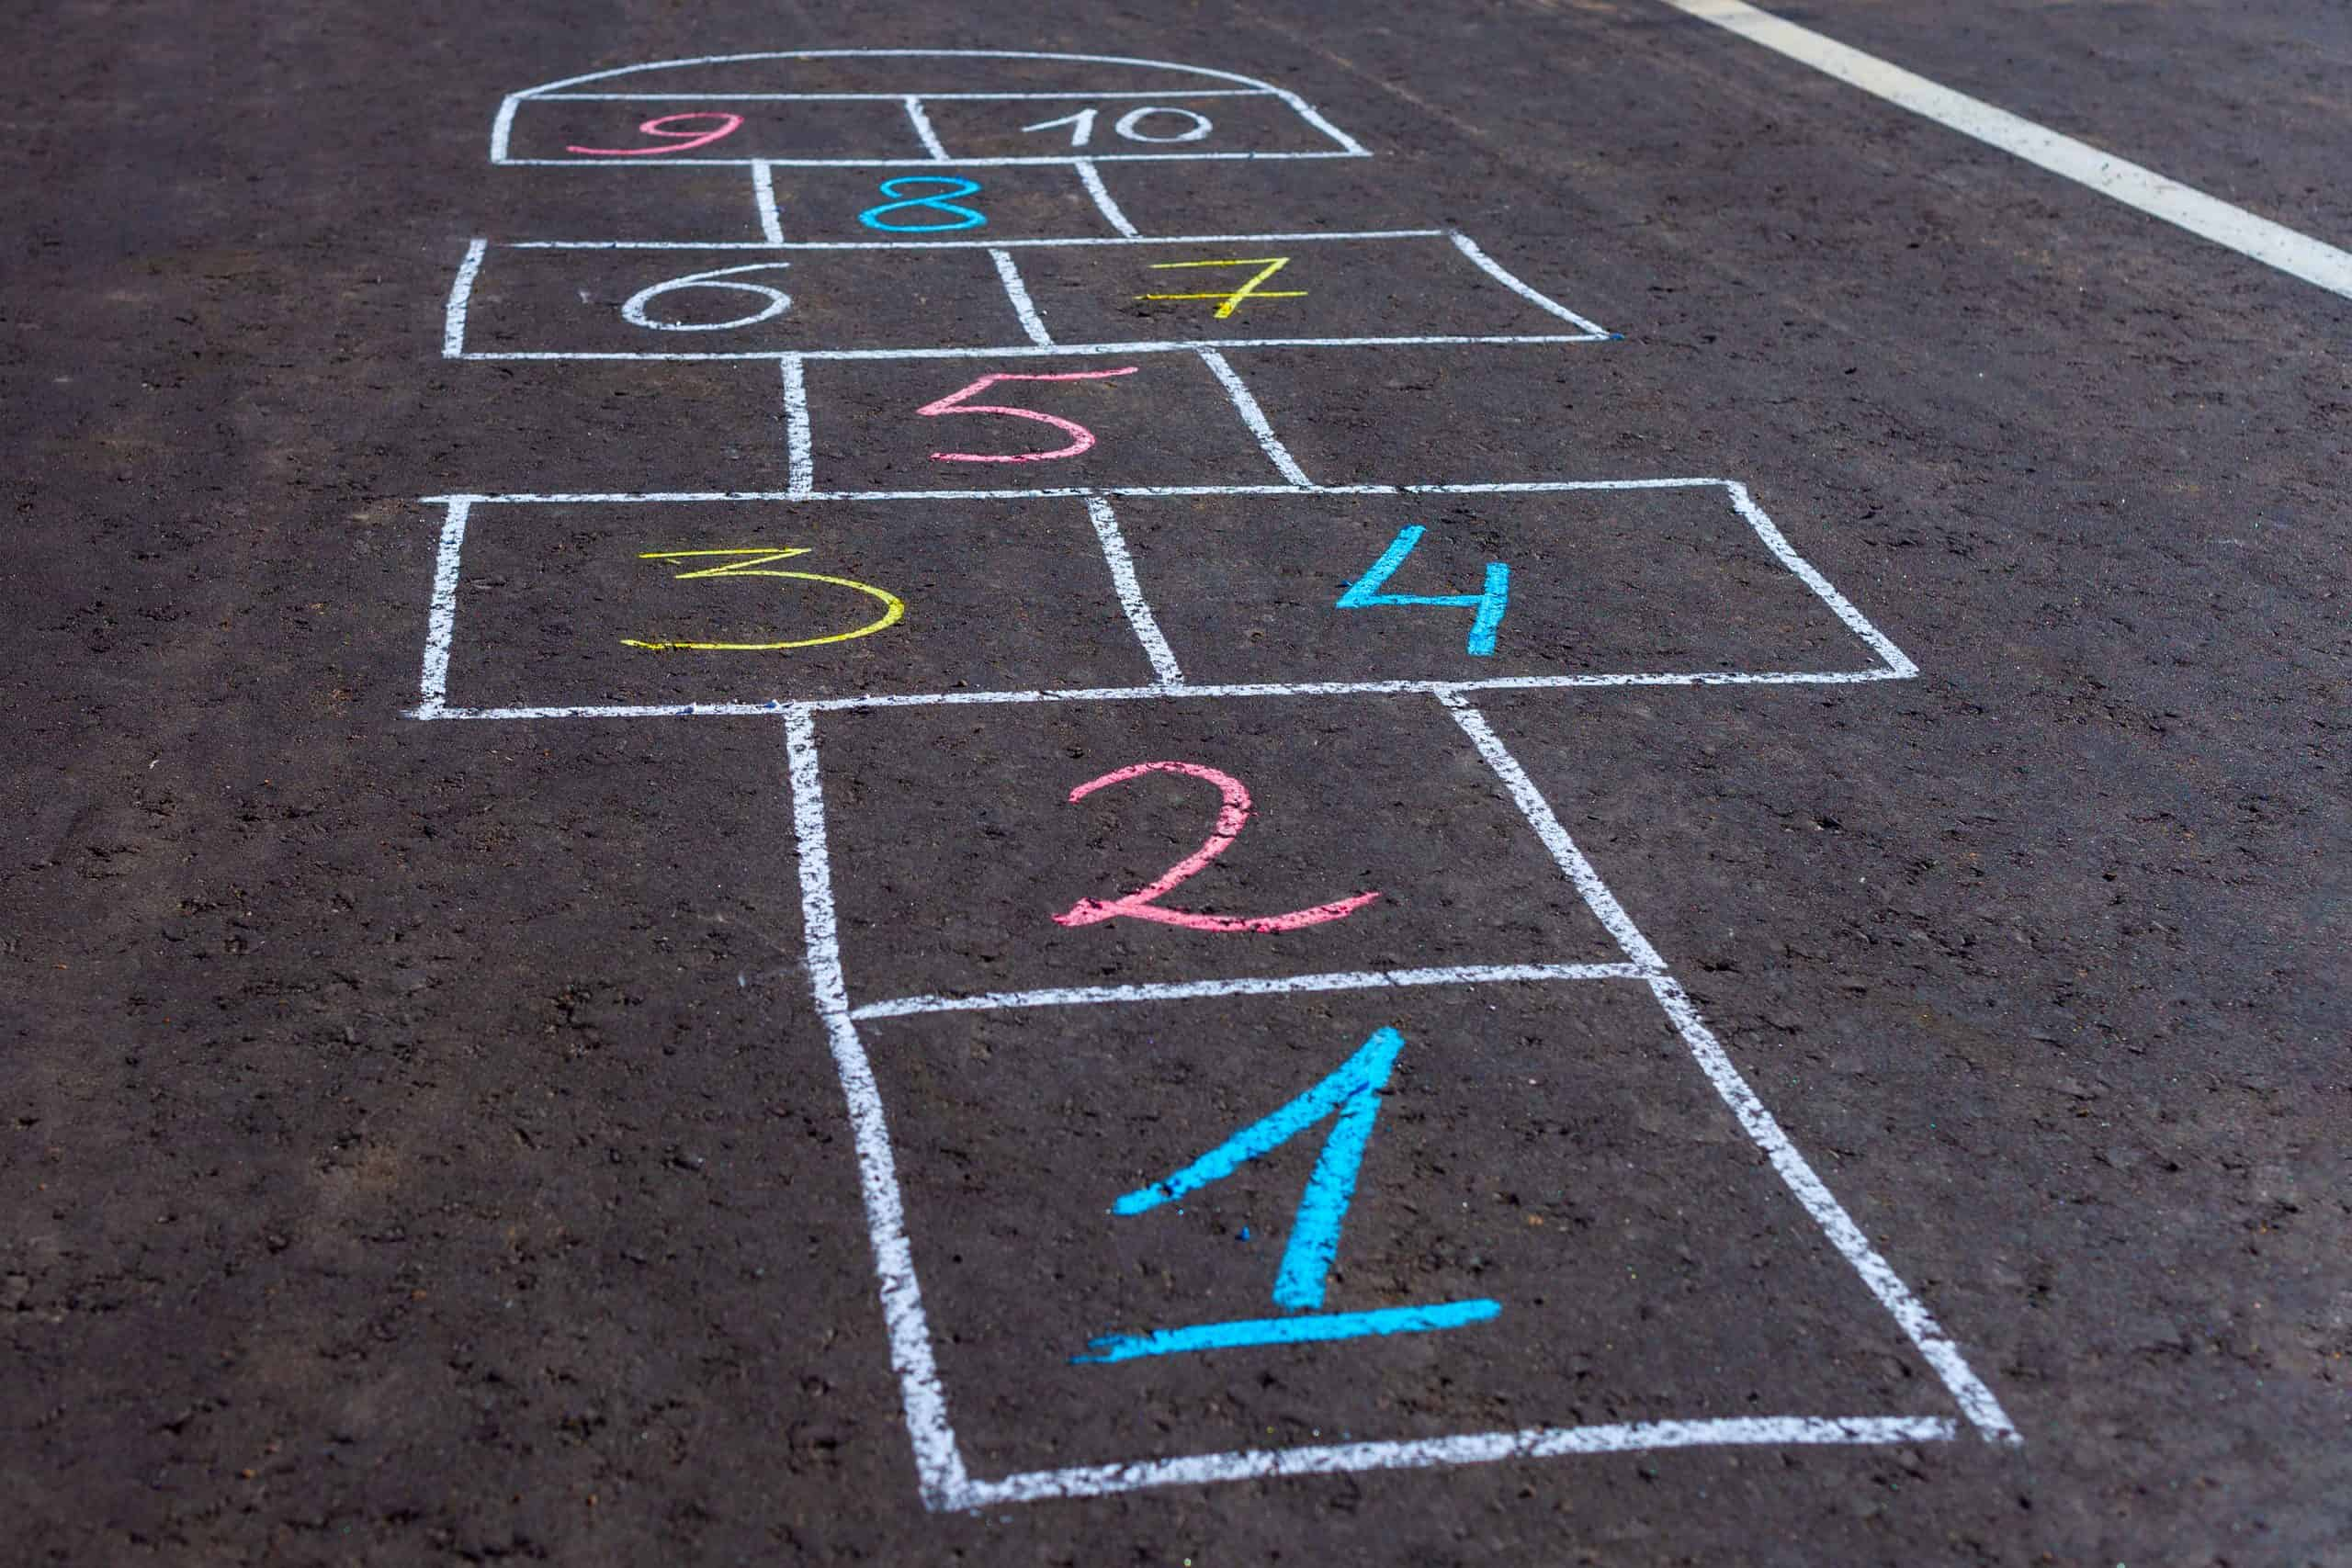 Old school game of hopscotch